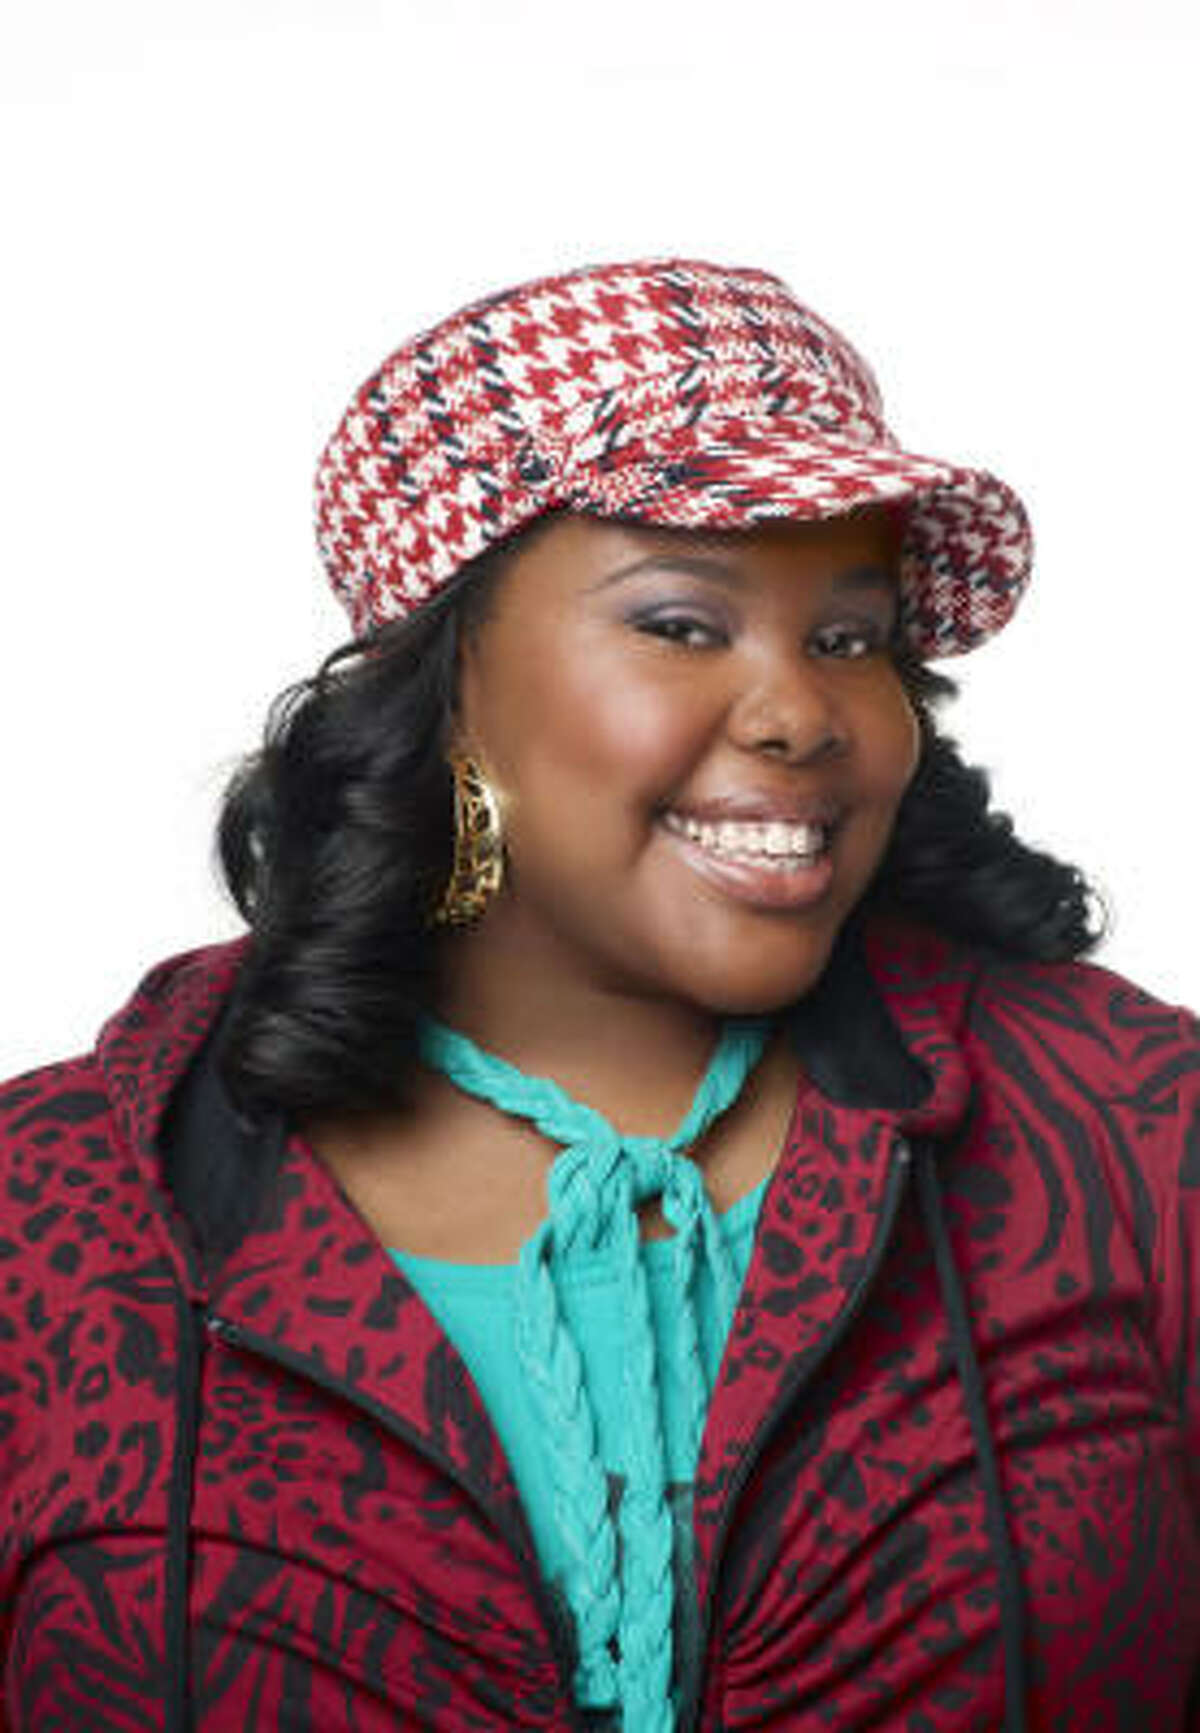 Amber Riley's more urban look as Mercedes. There's something here for everyone...even the guys.